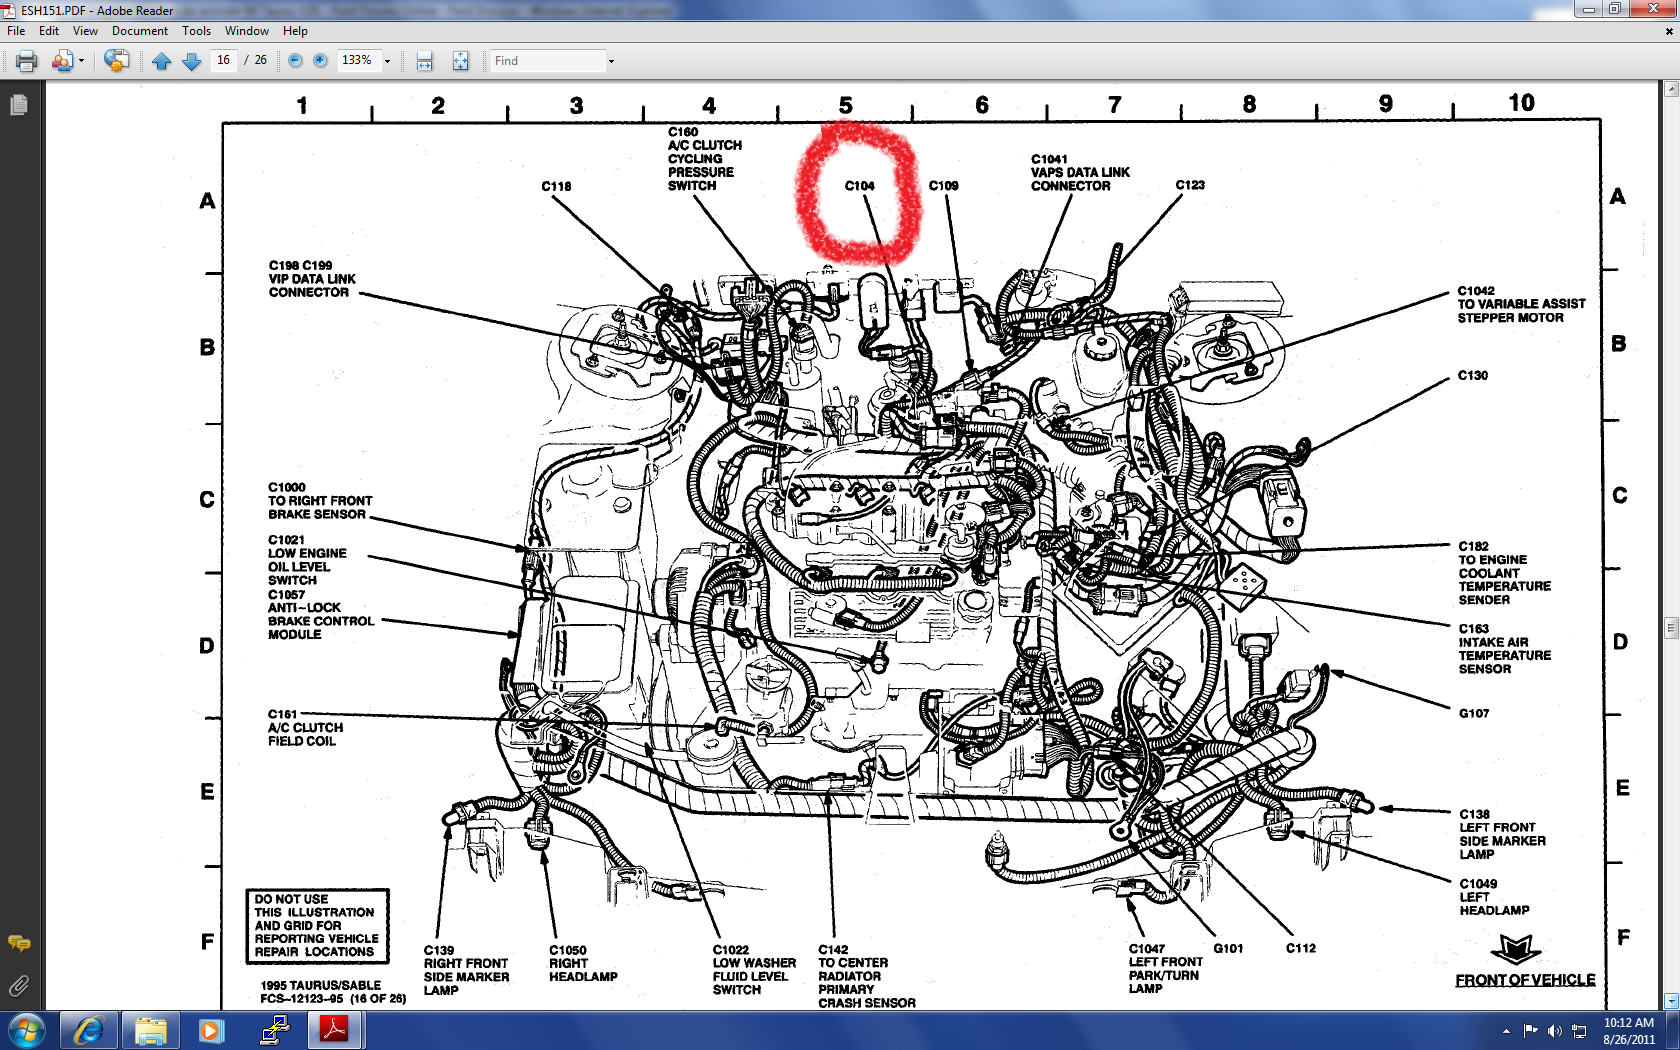 1997 Ford Taurus Radio Wiring Diagram from www.fordforumsonline.com